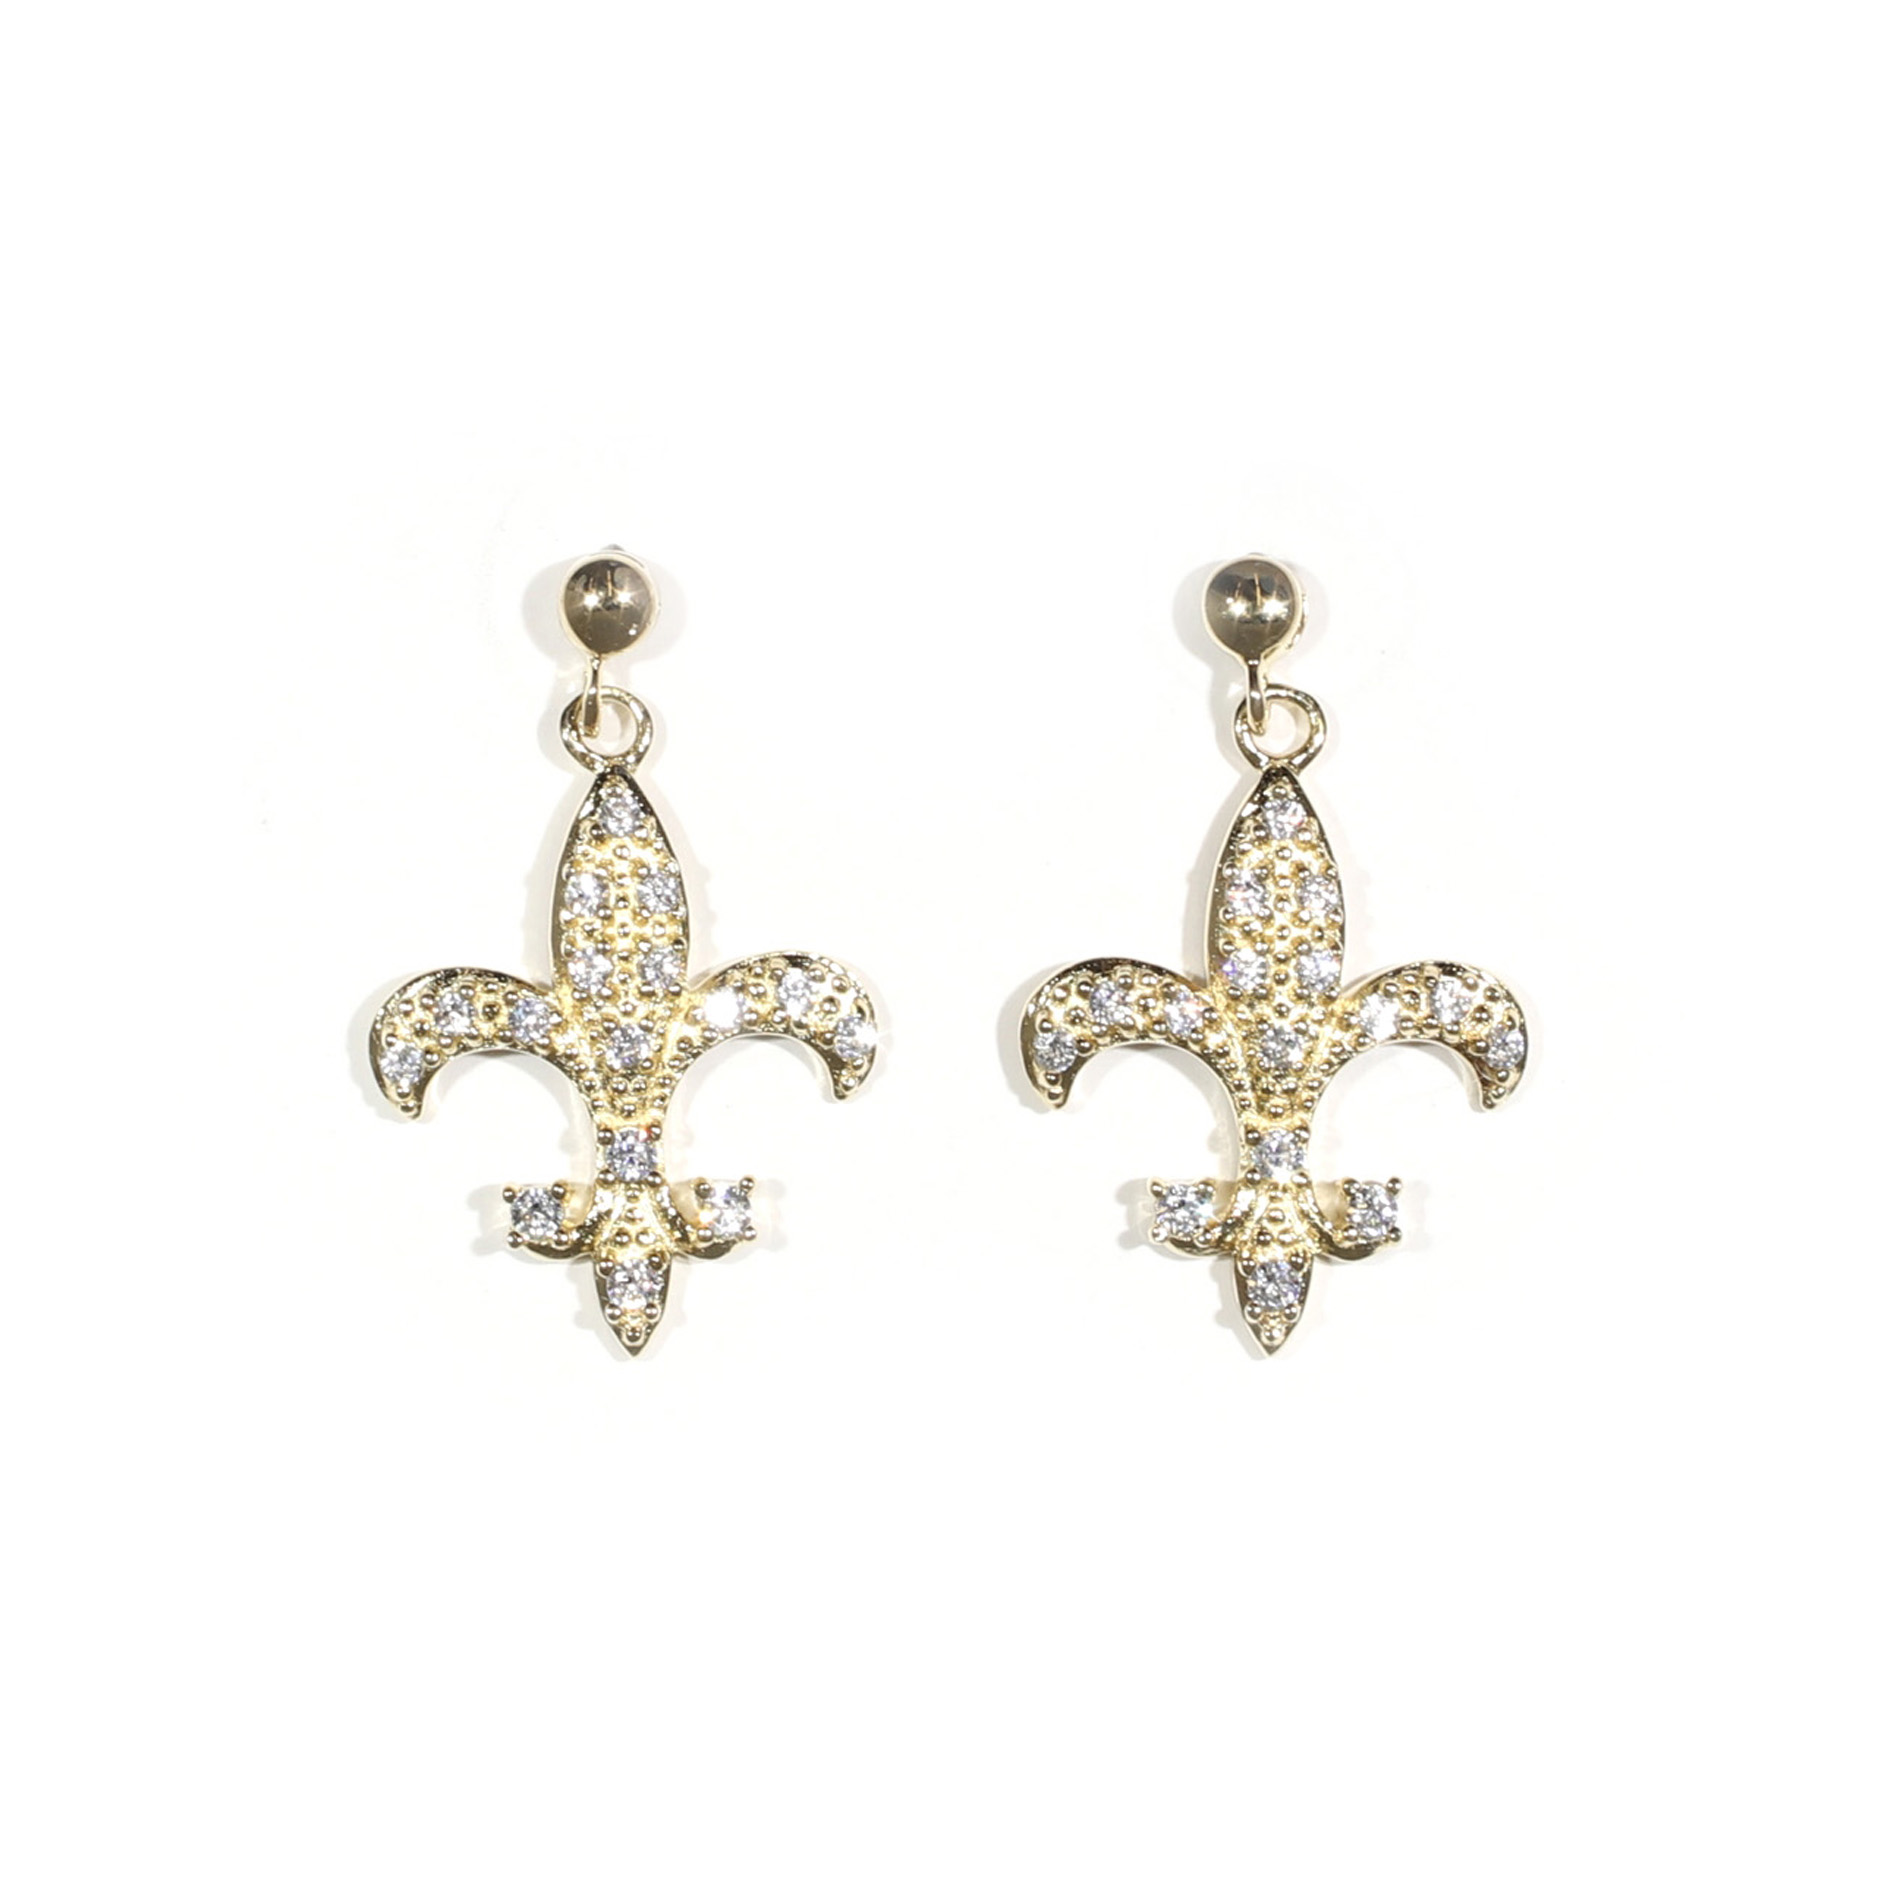 Pavé Fleur De Lis Earrings